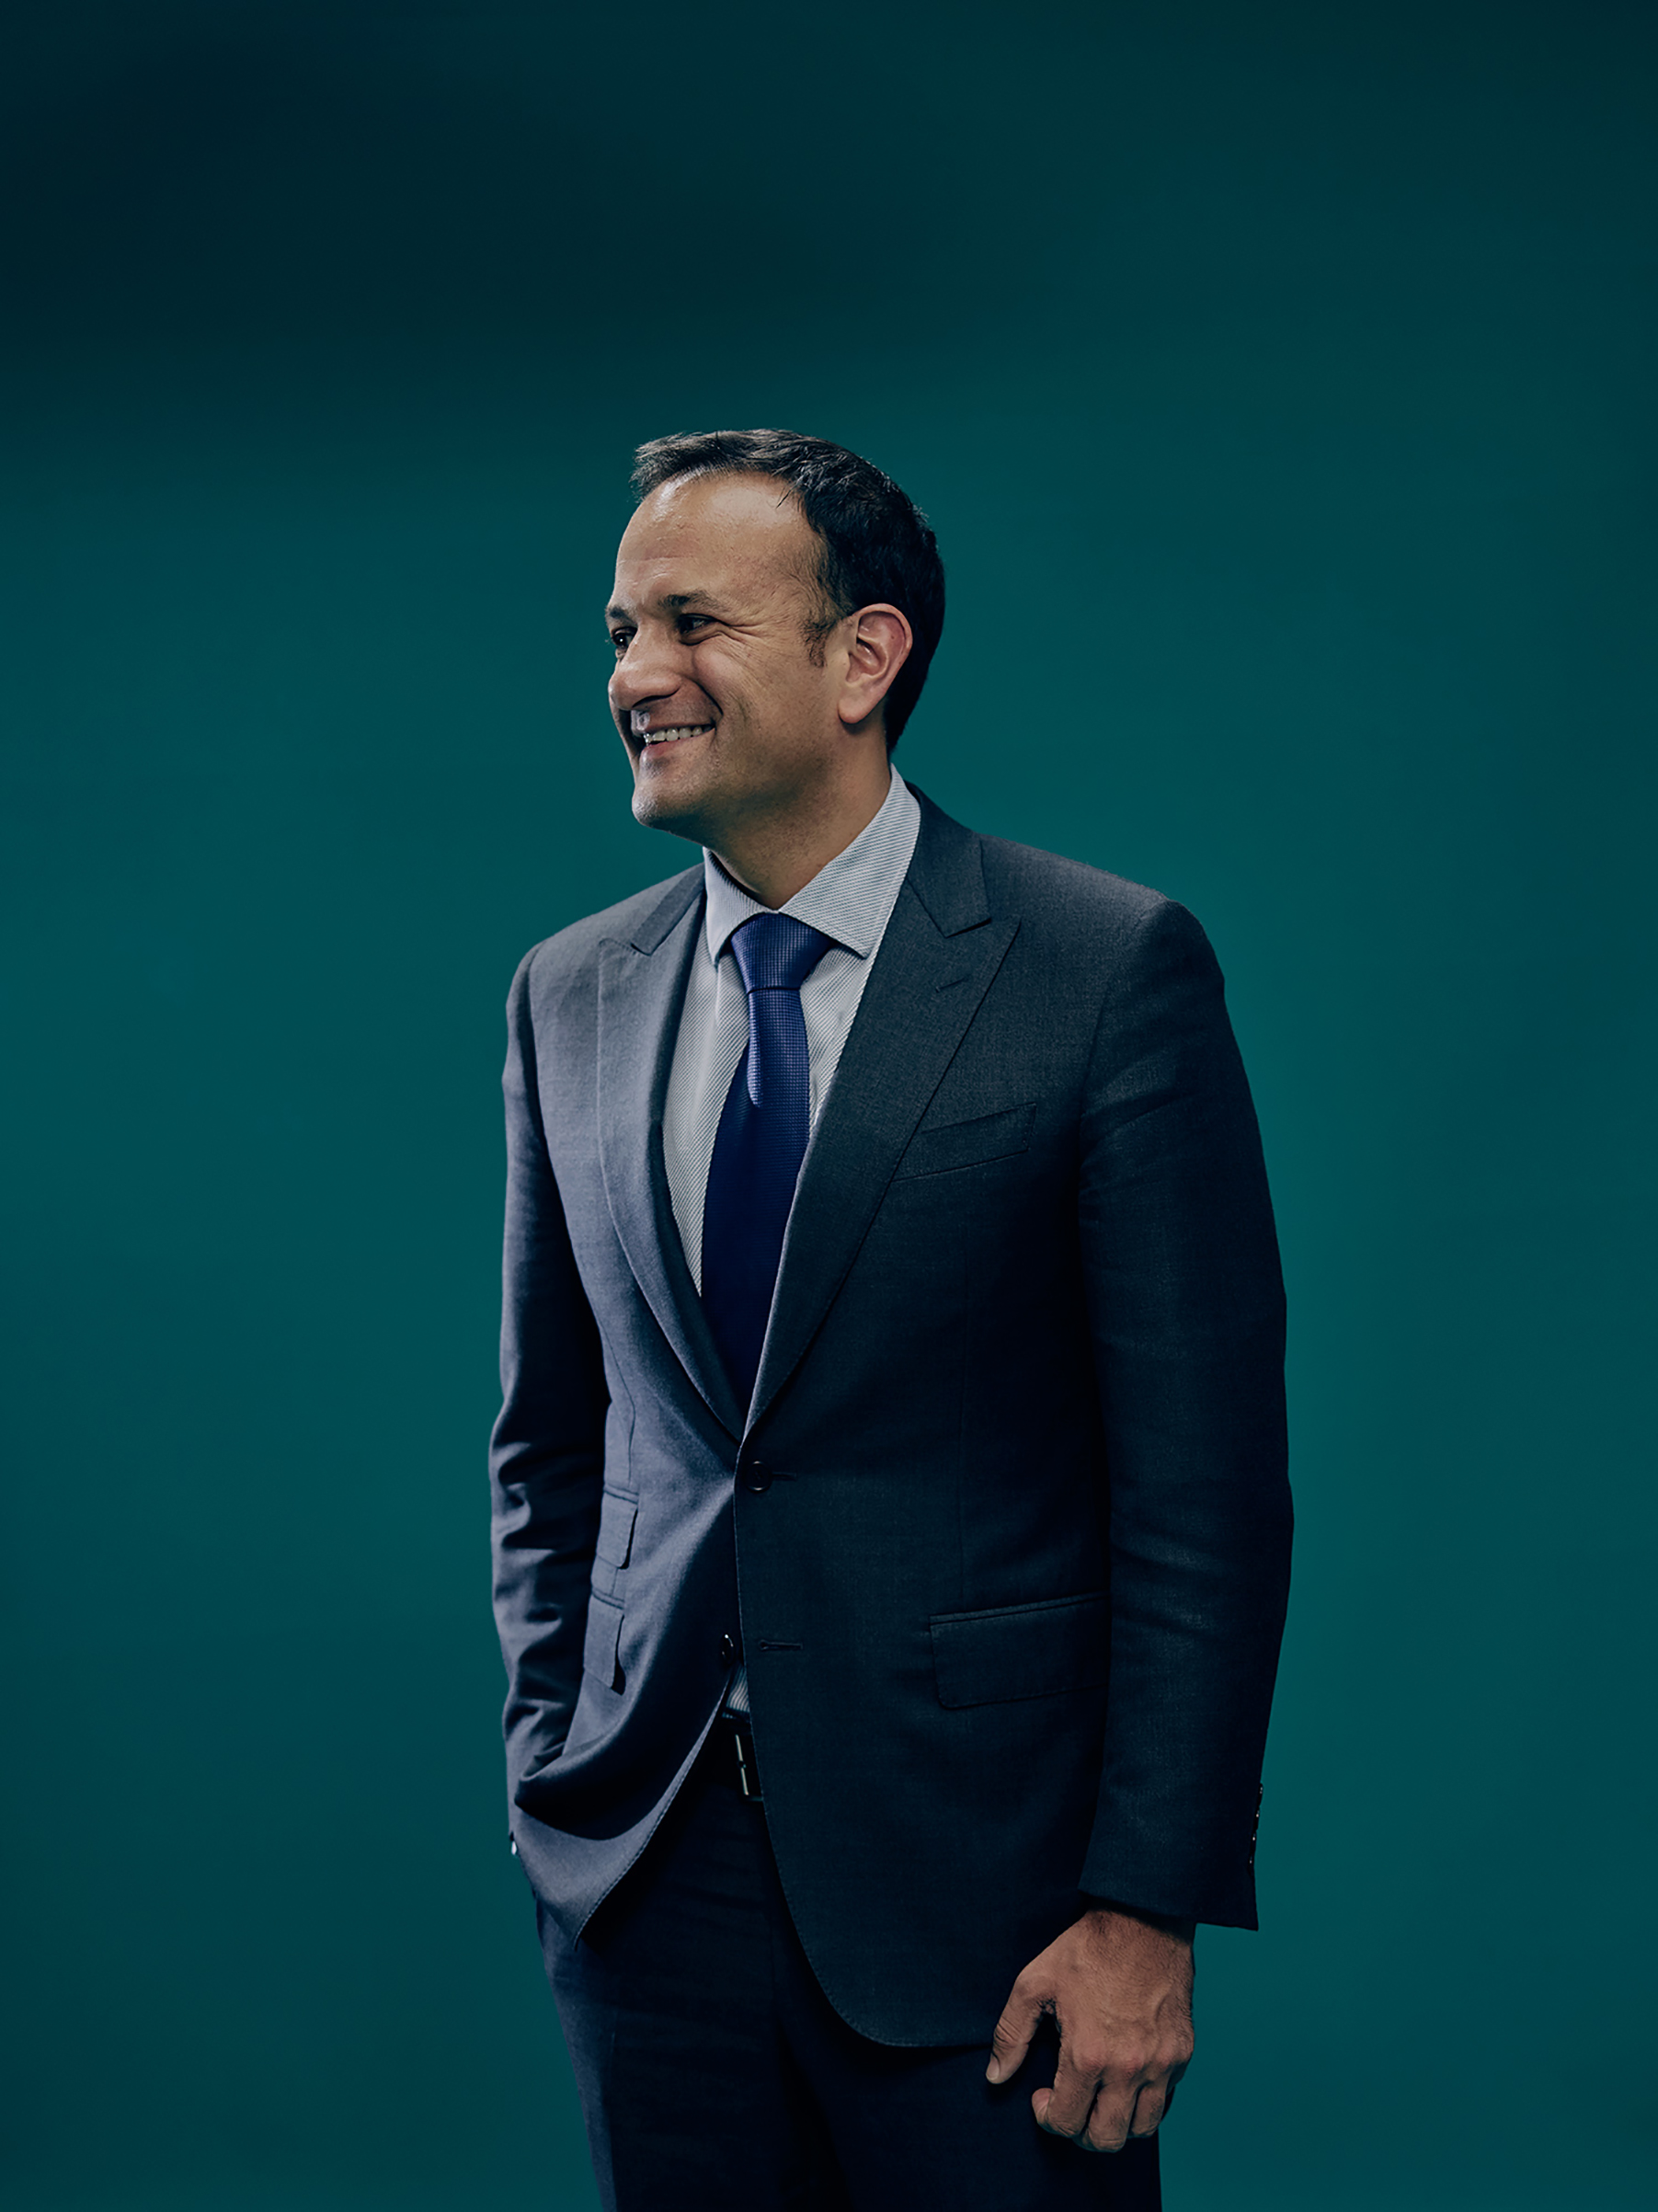 The new Irish Prime Minister Leo Varadkar poses for a portrait at the Irish Parliament in Dublin, Ireland on July 7, 2017.